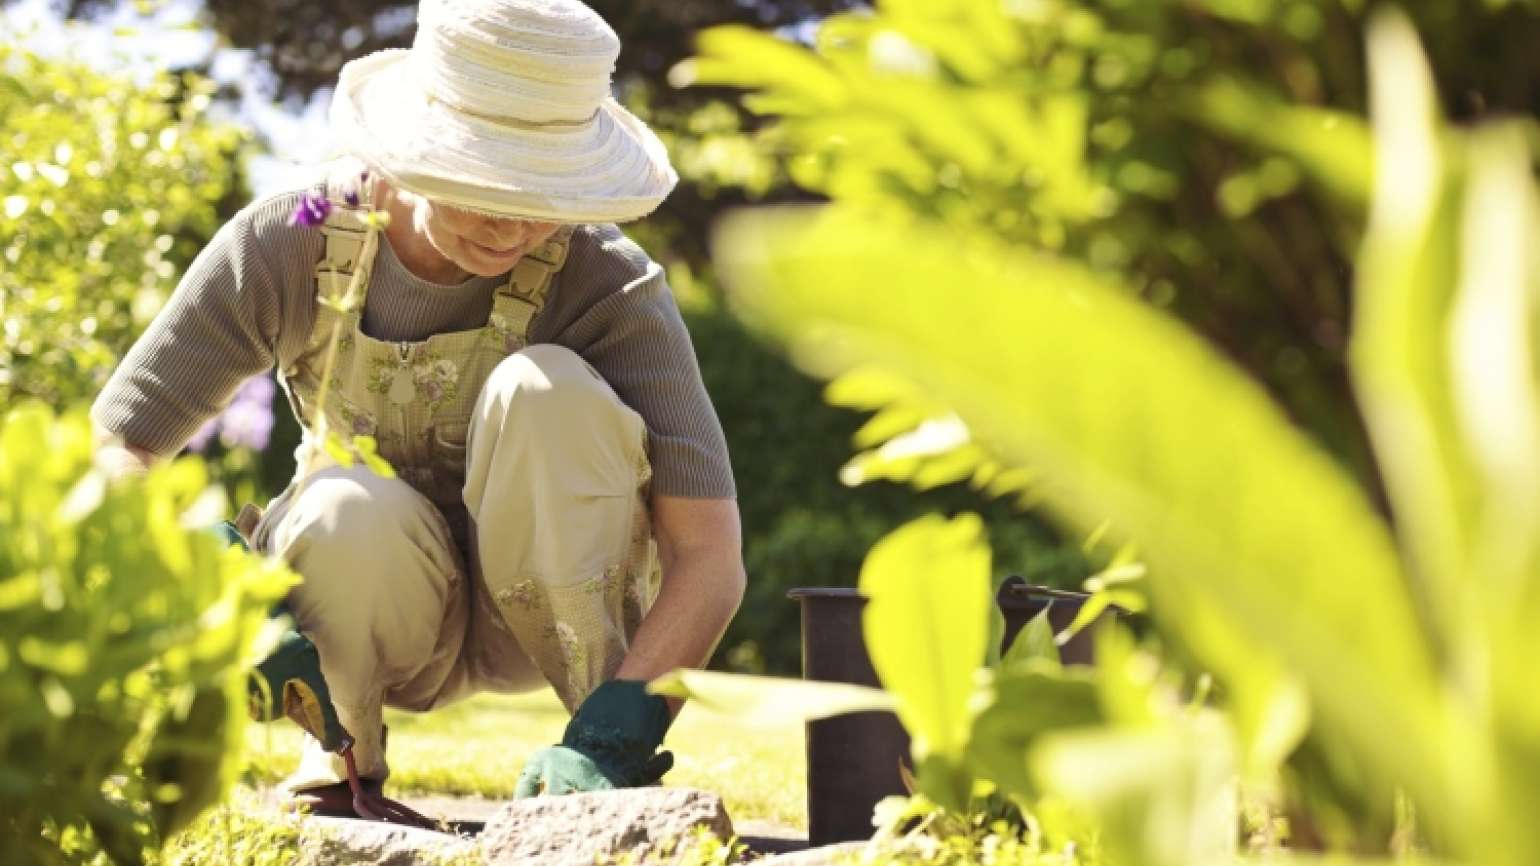 A woman pulls weeds and discovers a tip to apply to her prayer life.